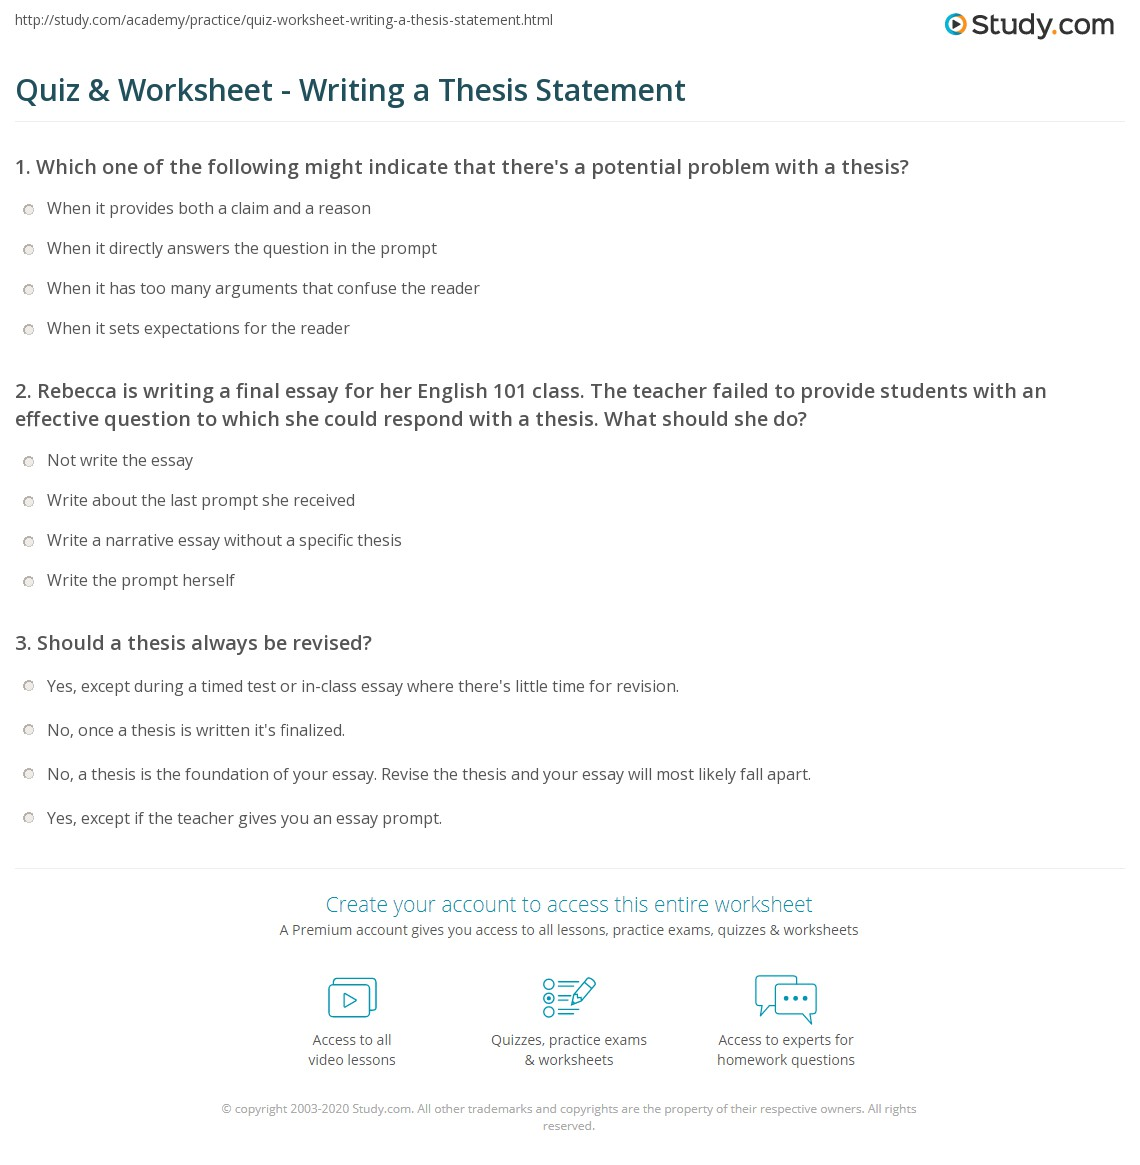 Worksheets Thesis Statement Worksheet quiz worksheet writing a thesis statement study com the teacher failed to provide students with an effective question which she could respond thesis